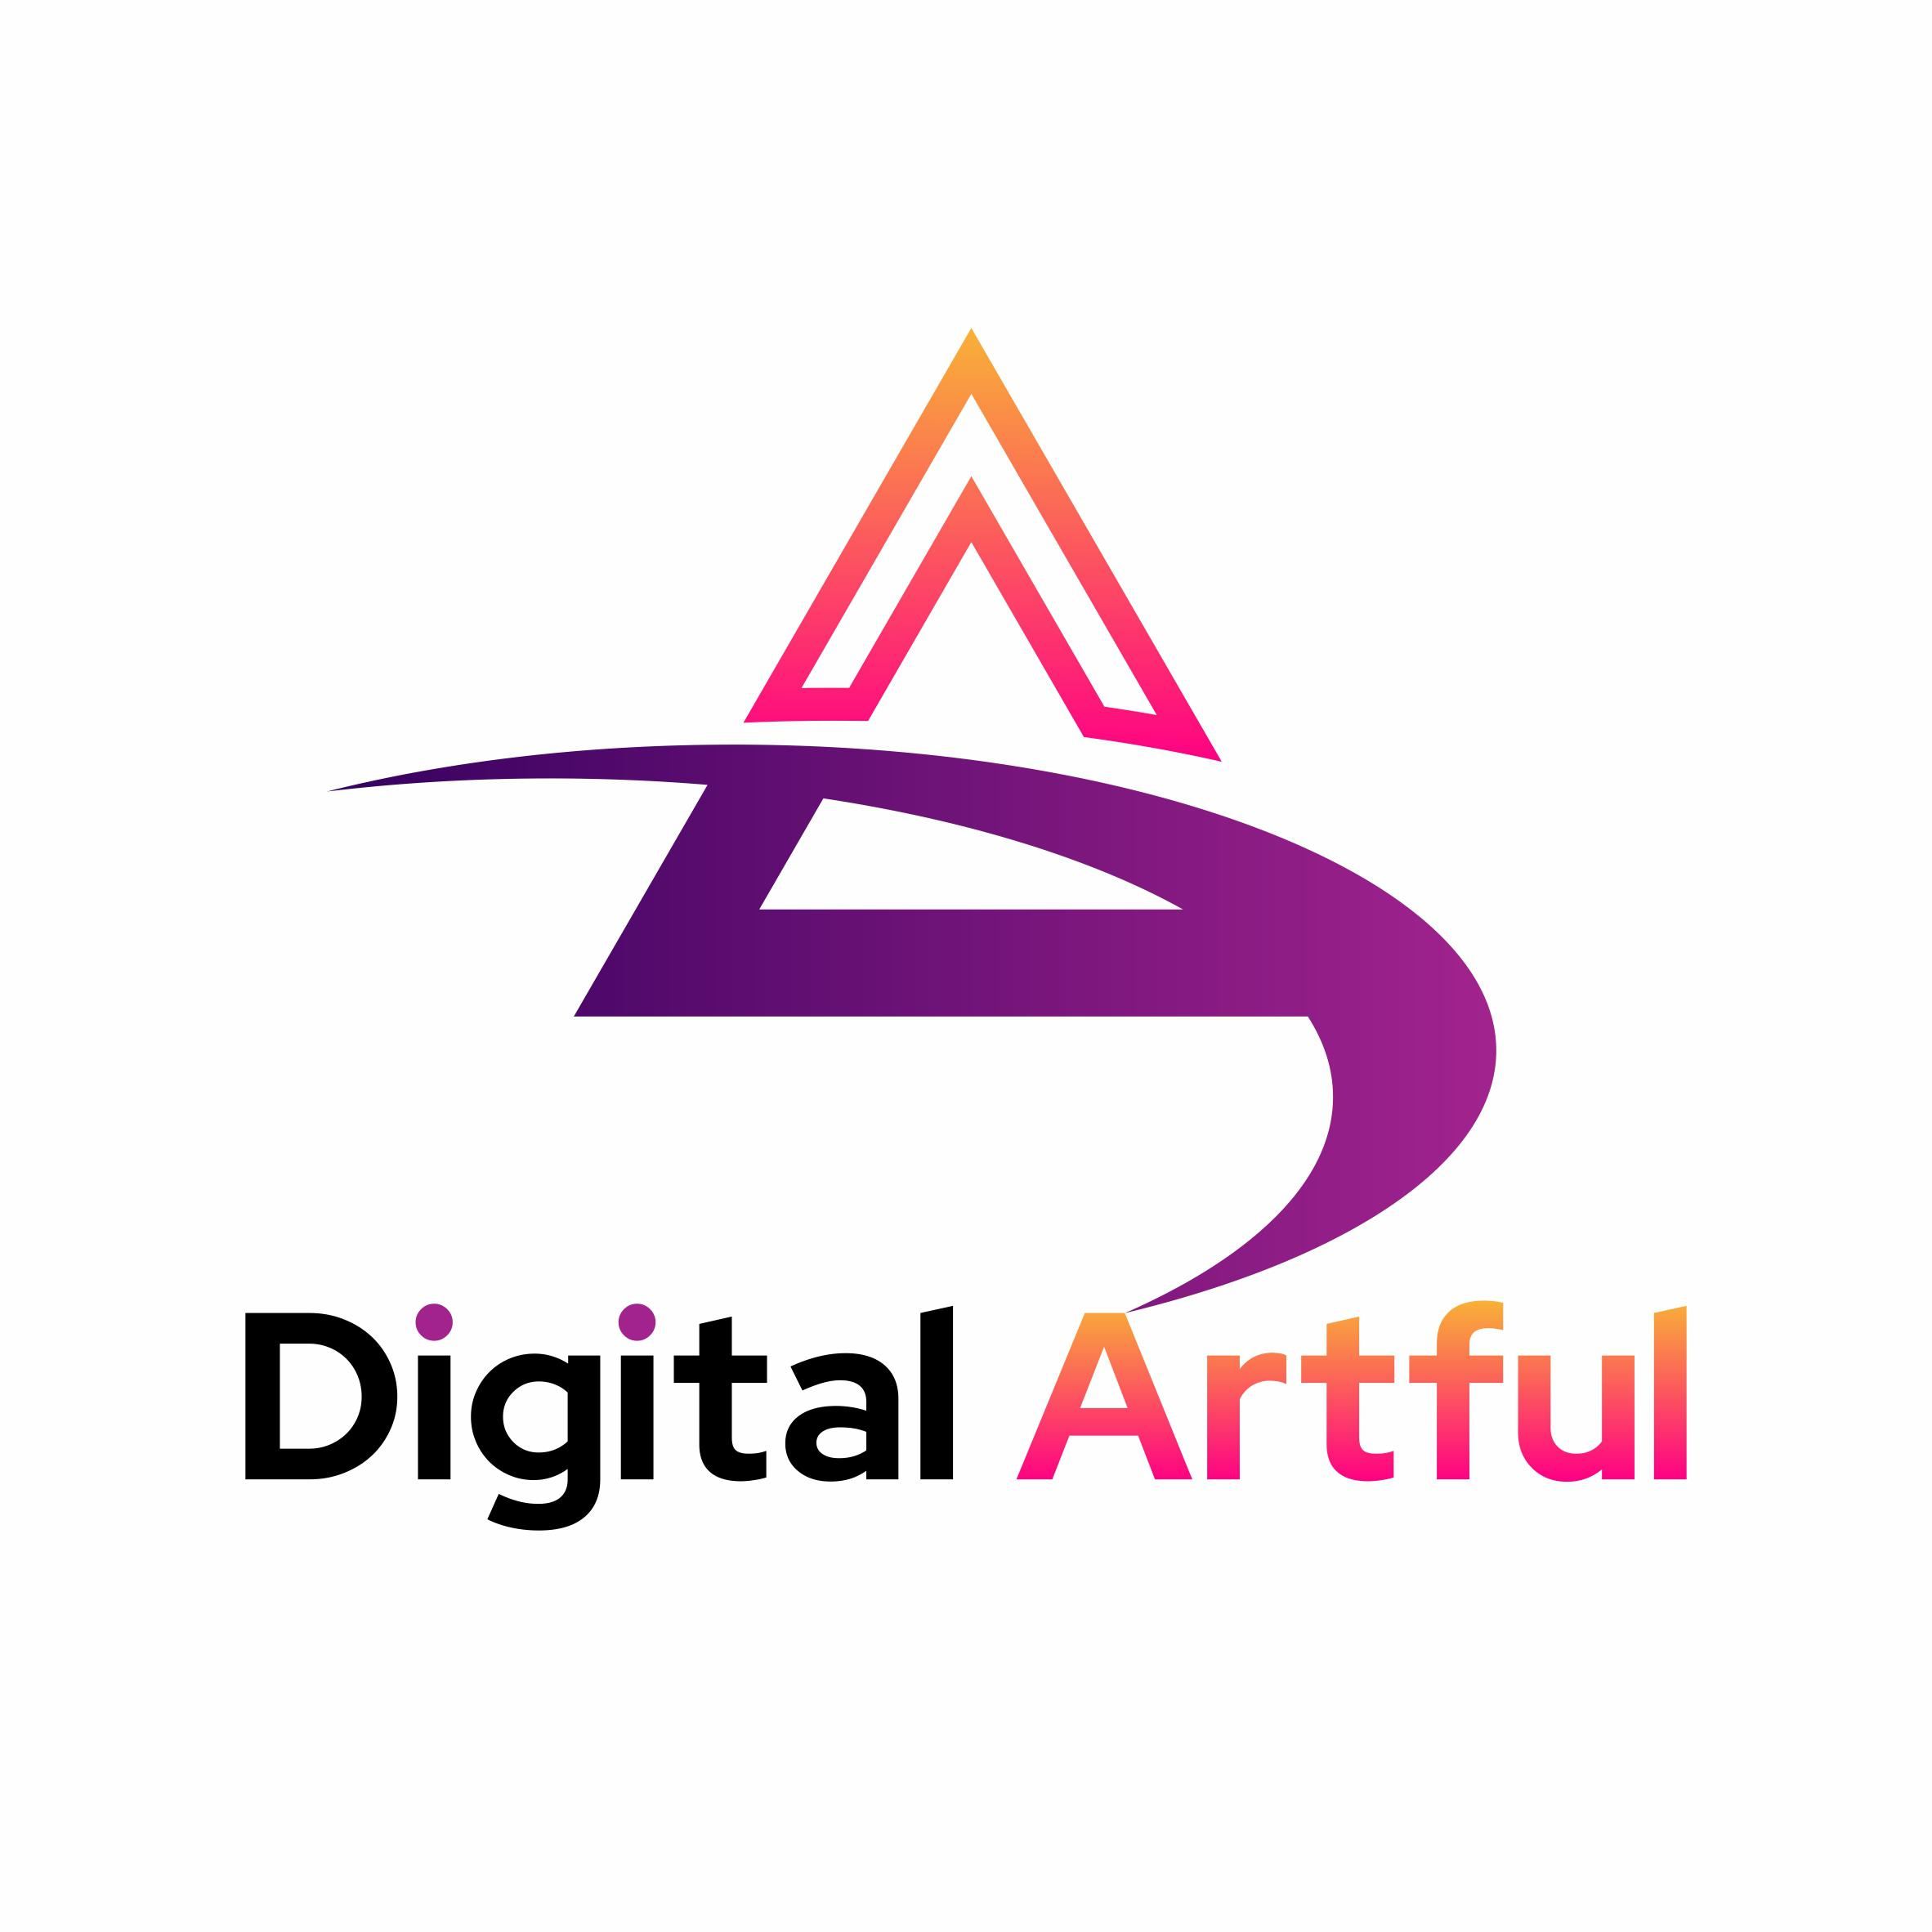 Digital artful Logo